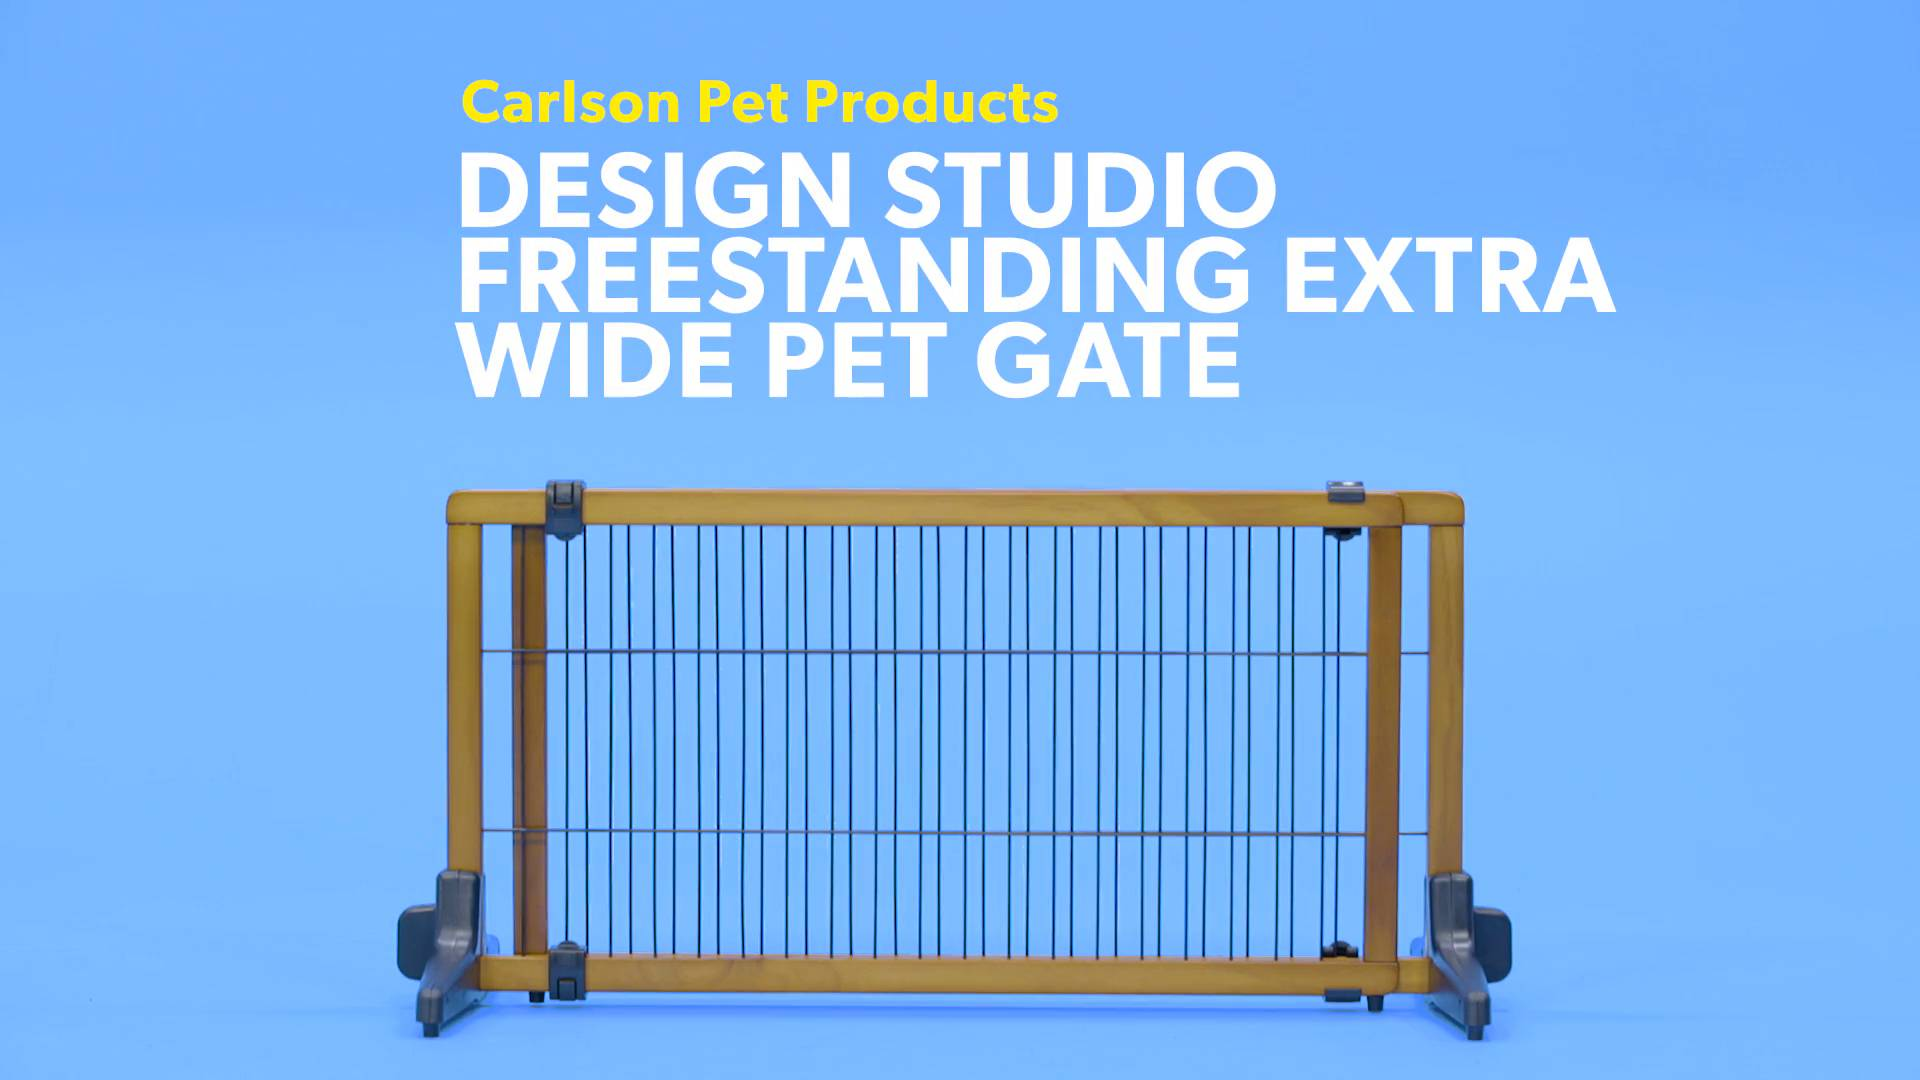 Carlson Pet Products Design Studio Freestanding Extra Wide Pet Gate